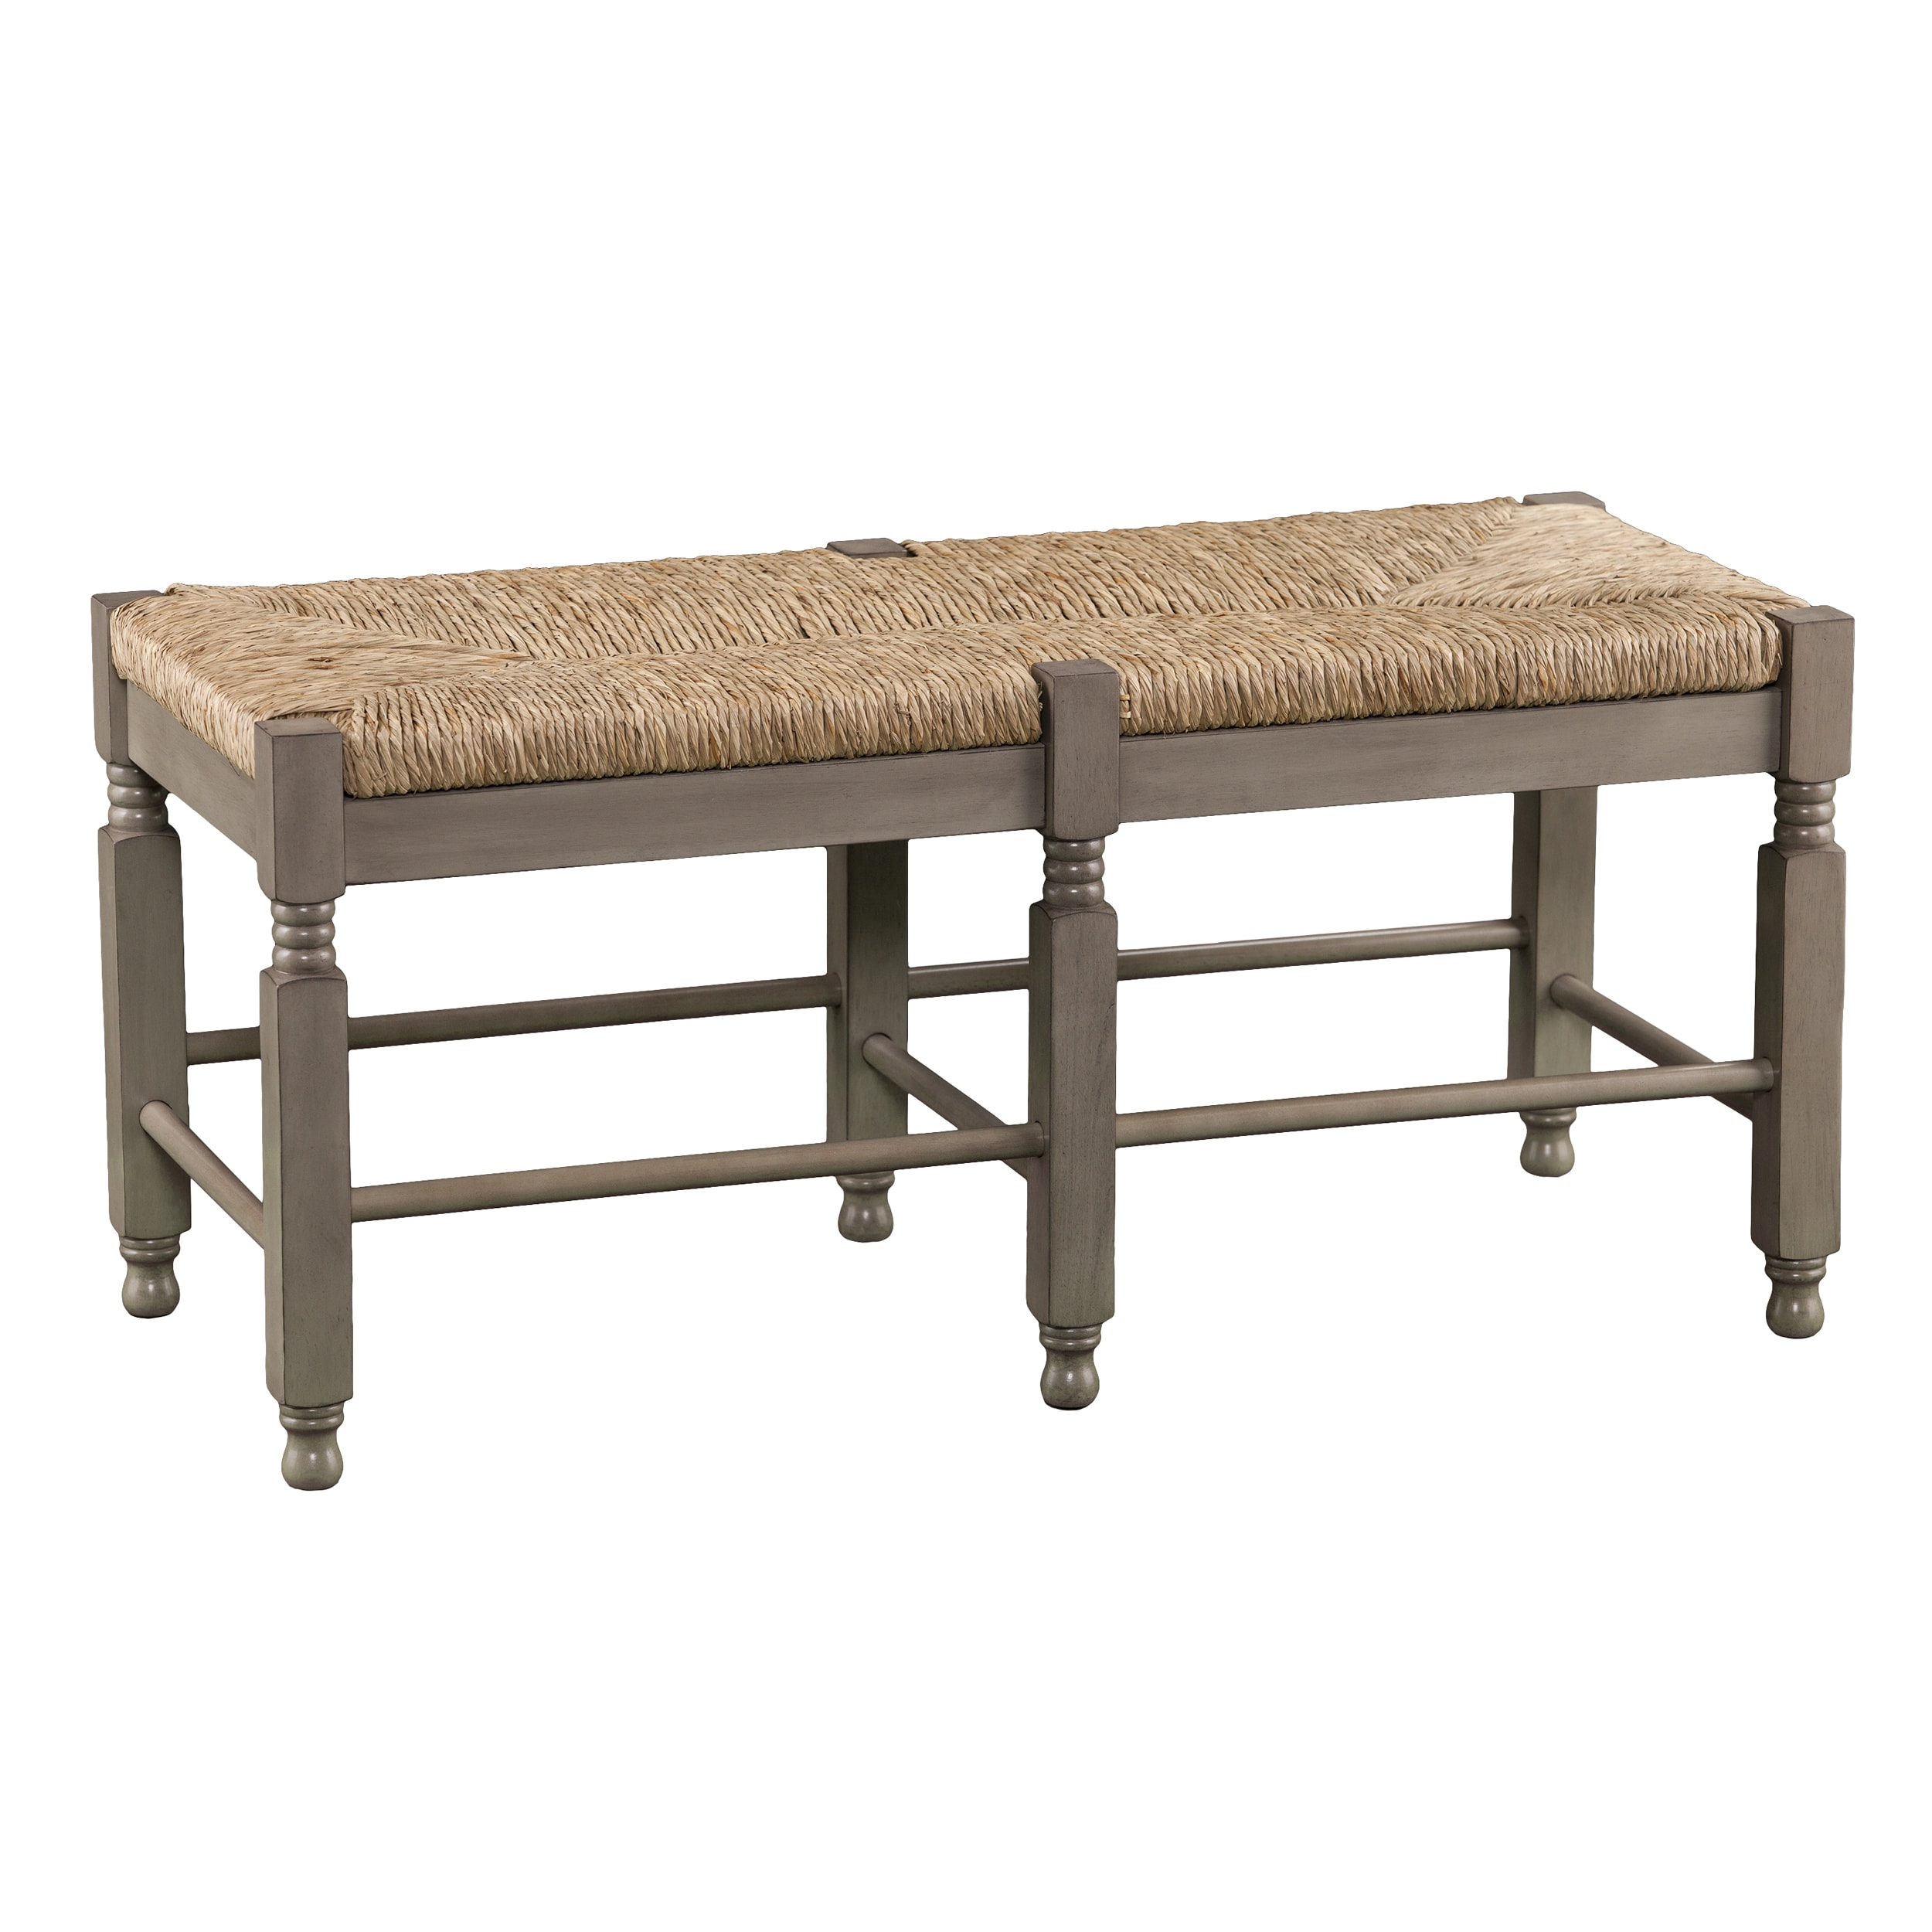 Nice Harper Blvd Kennon Seagrass Bench/ Cocktail Table   Free Shipping Today    Overstock.com   22050530 Gallery